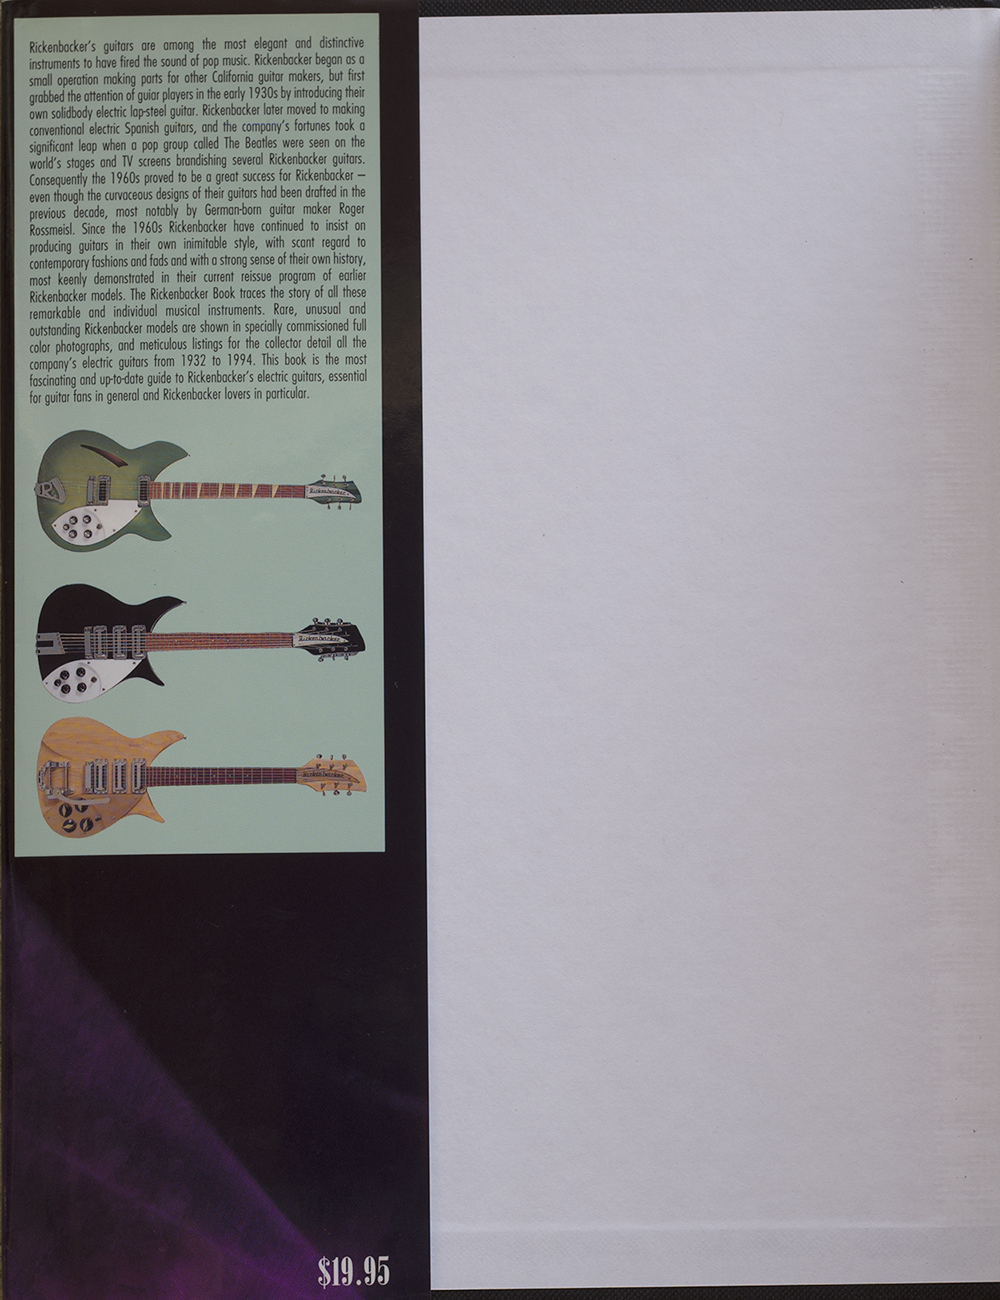 the guitar also appears on the inside jacket sleeve